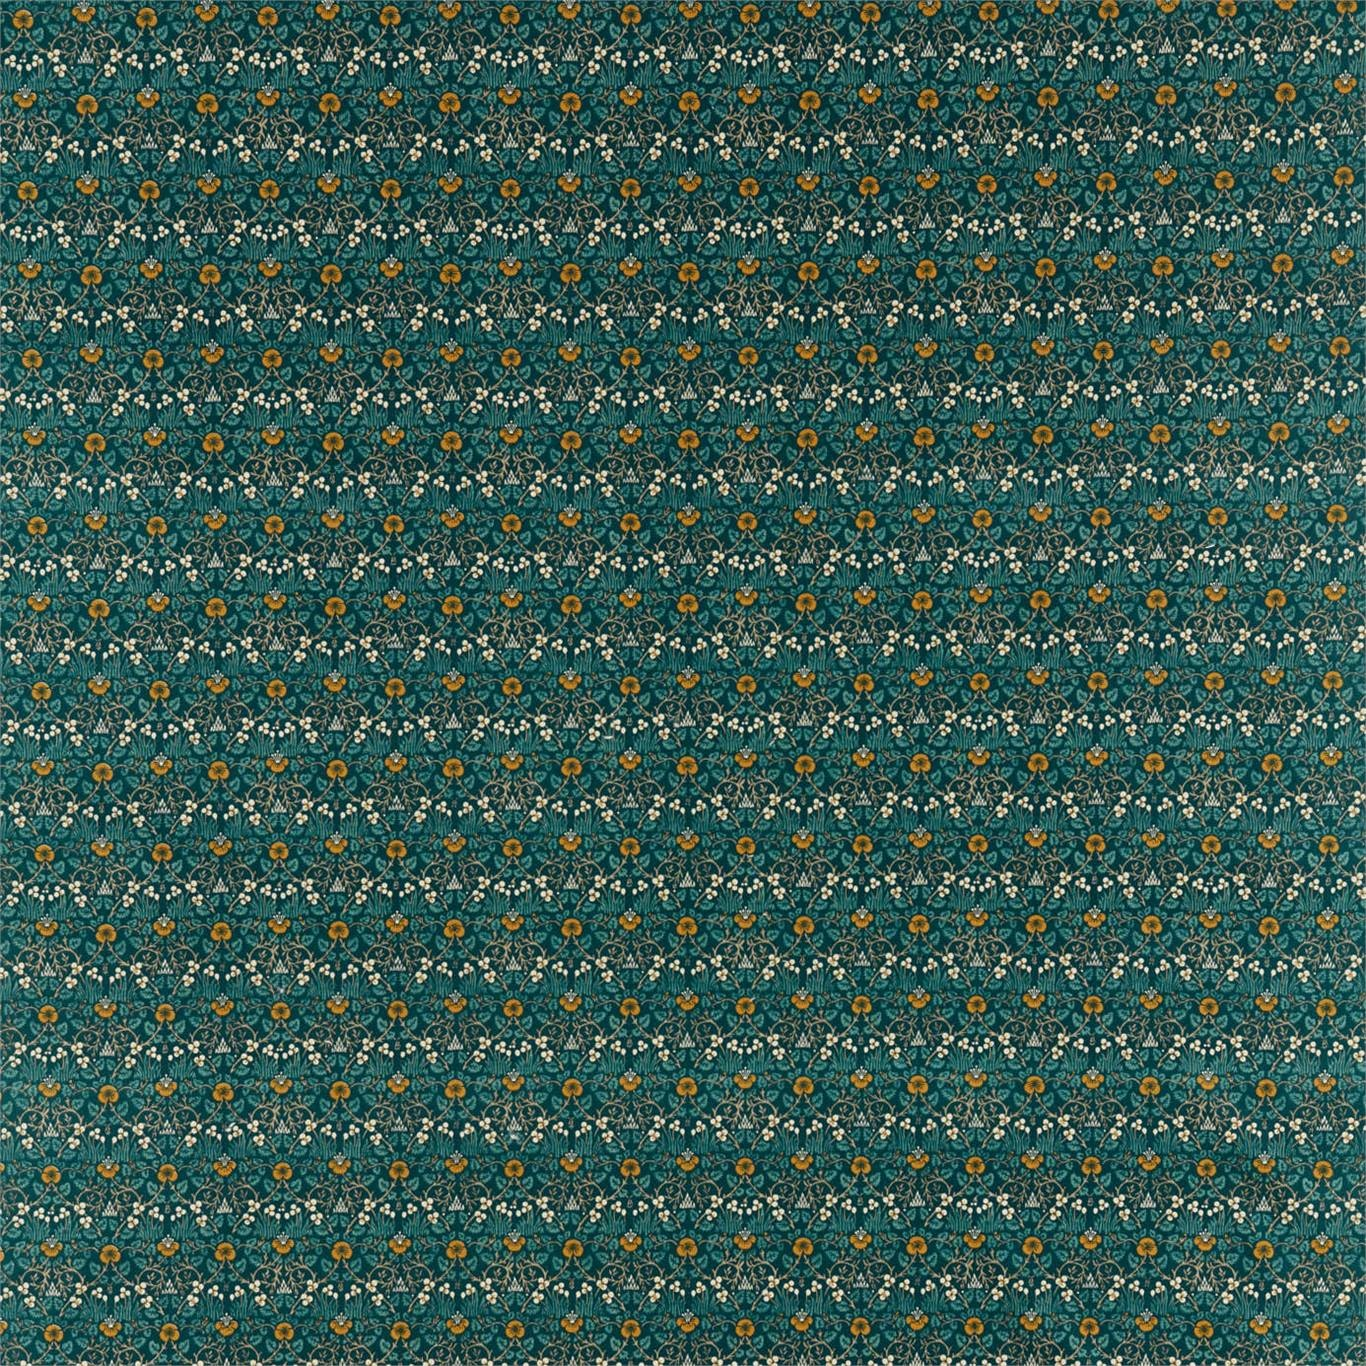 Image of Morris & Co Eye Bright Teal Fabric 226598